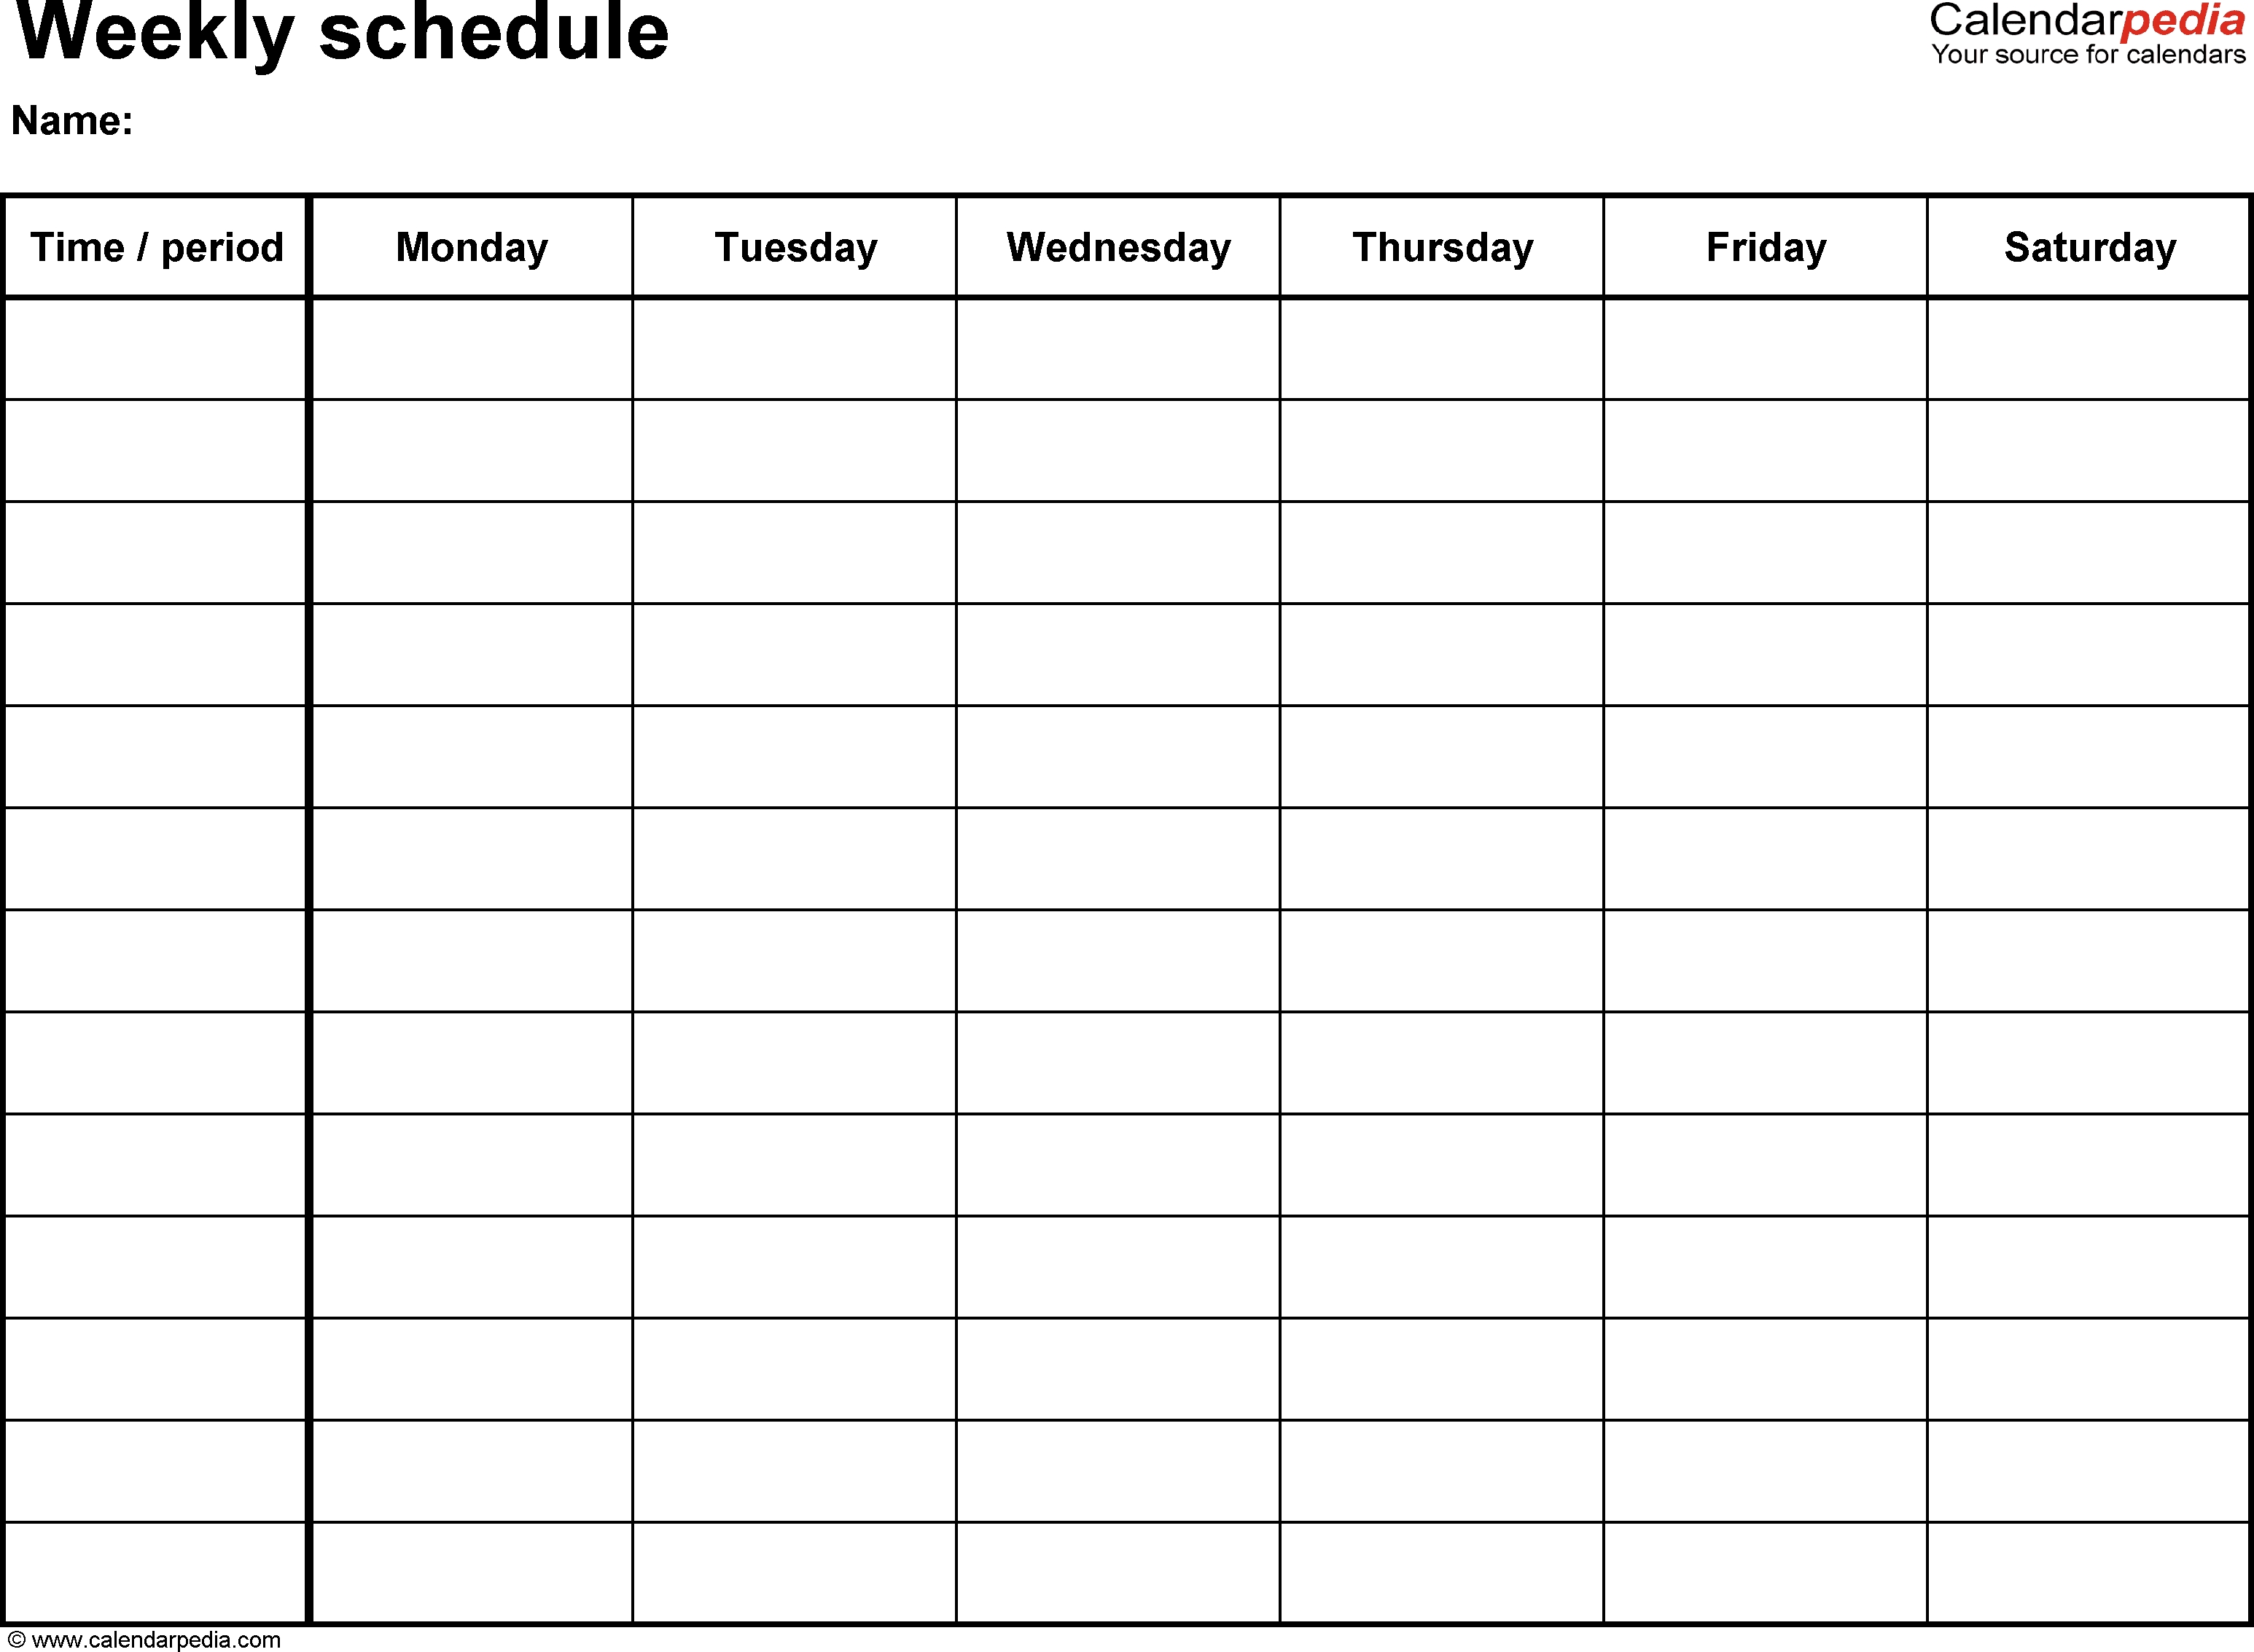 Free Weekly Schedule Templates For Word - 18 Templates intended for Monday To Friday Planner Template